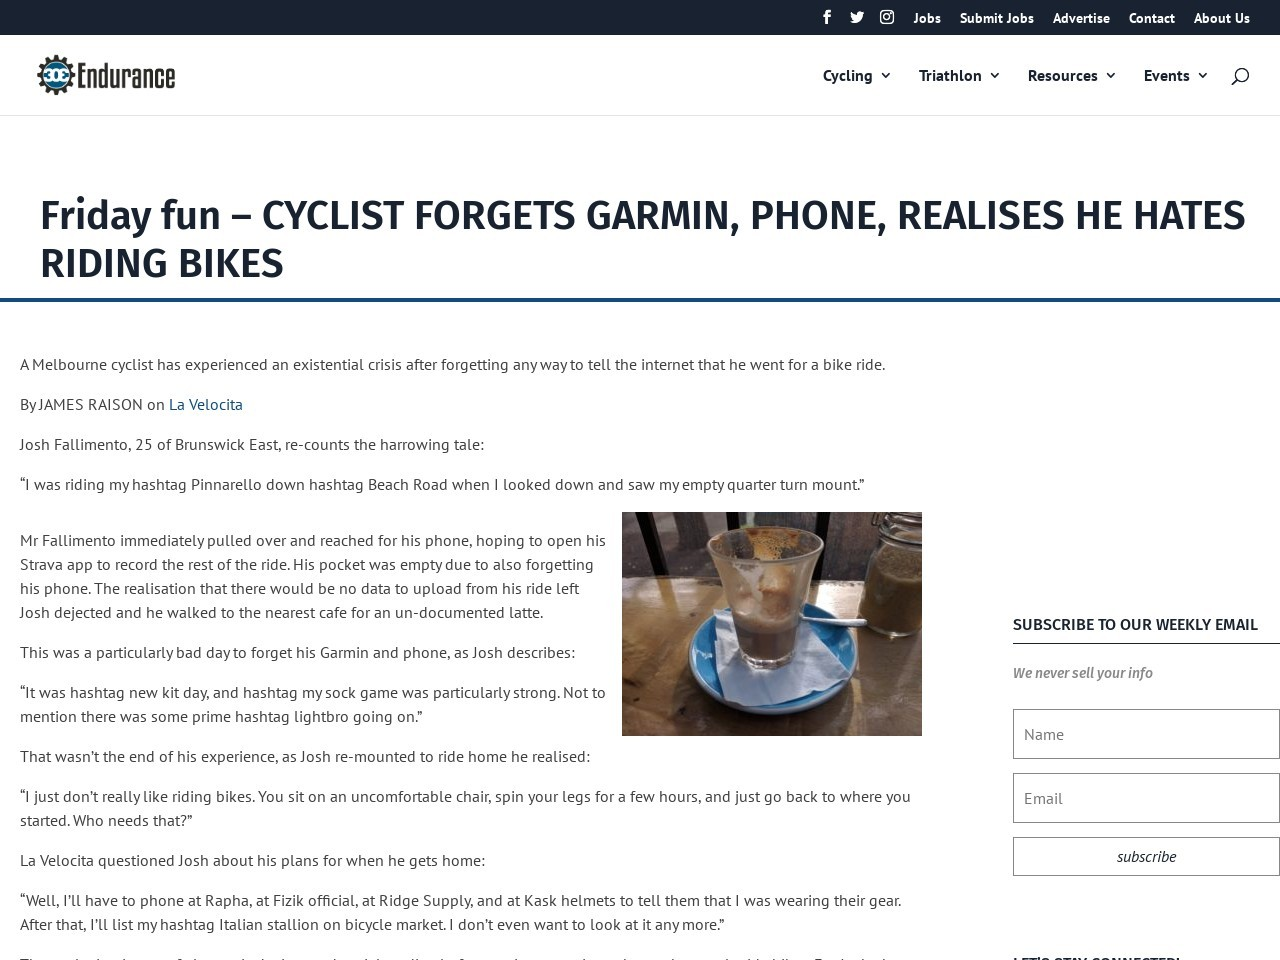 Friday fun – CYCLIST FORGETS GARMIN, PHONE, REALISES HE HATES RIDING BIKES